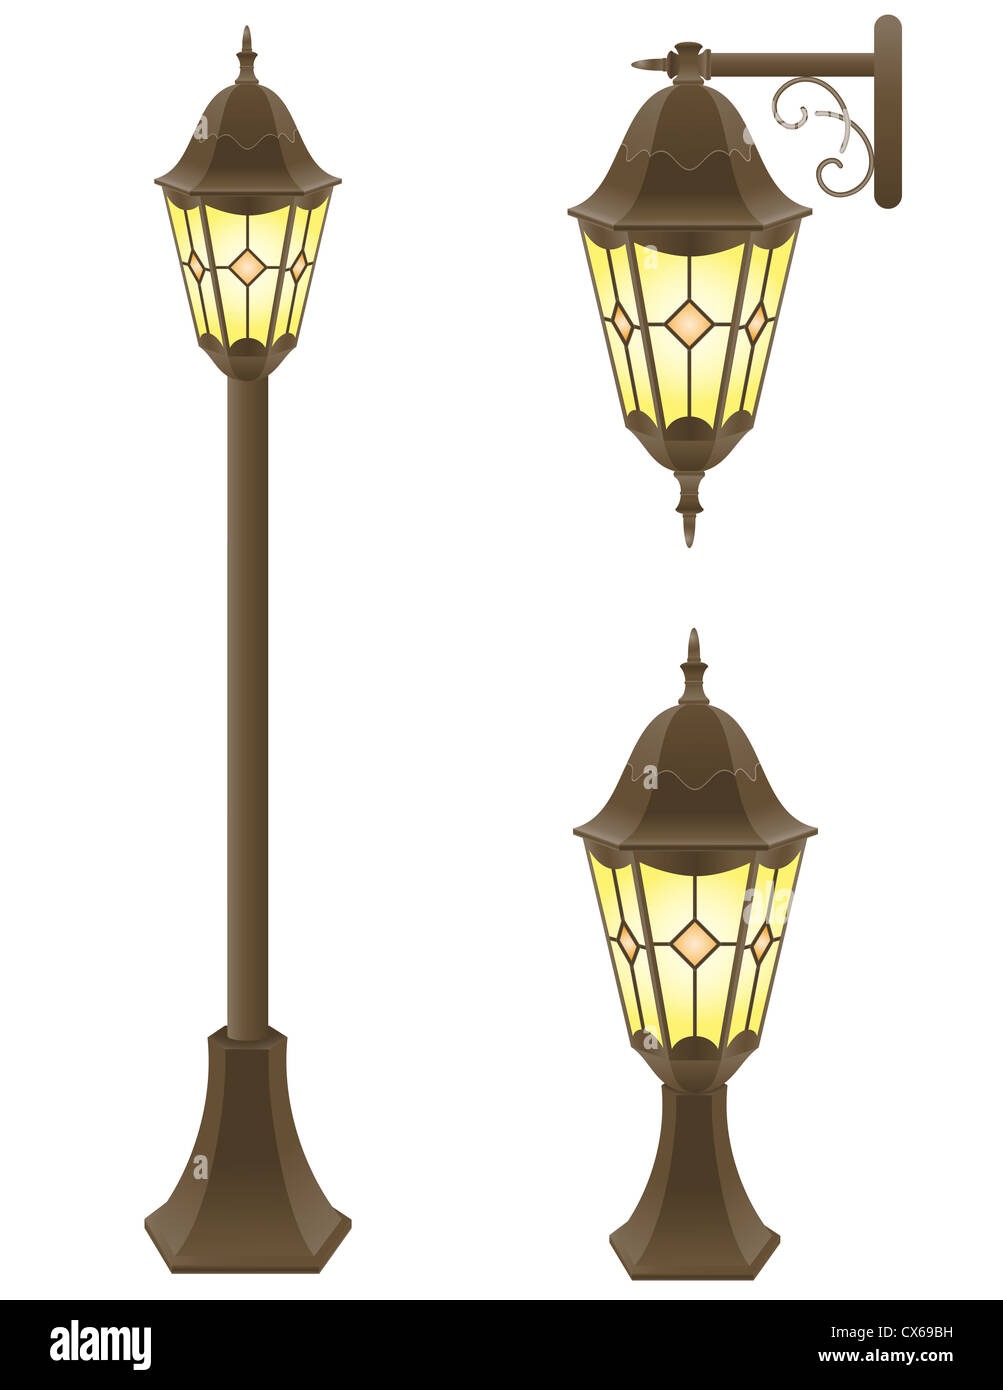 streetlight vector illustration isolated on white background Stock Photo